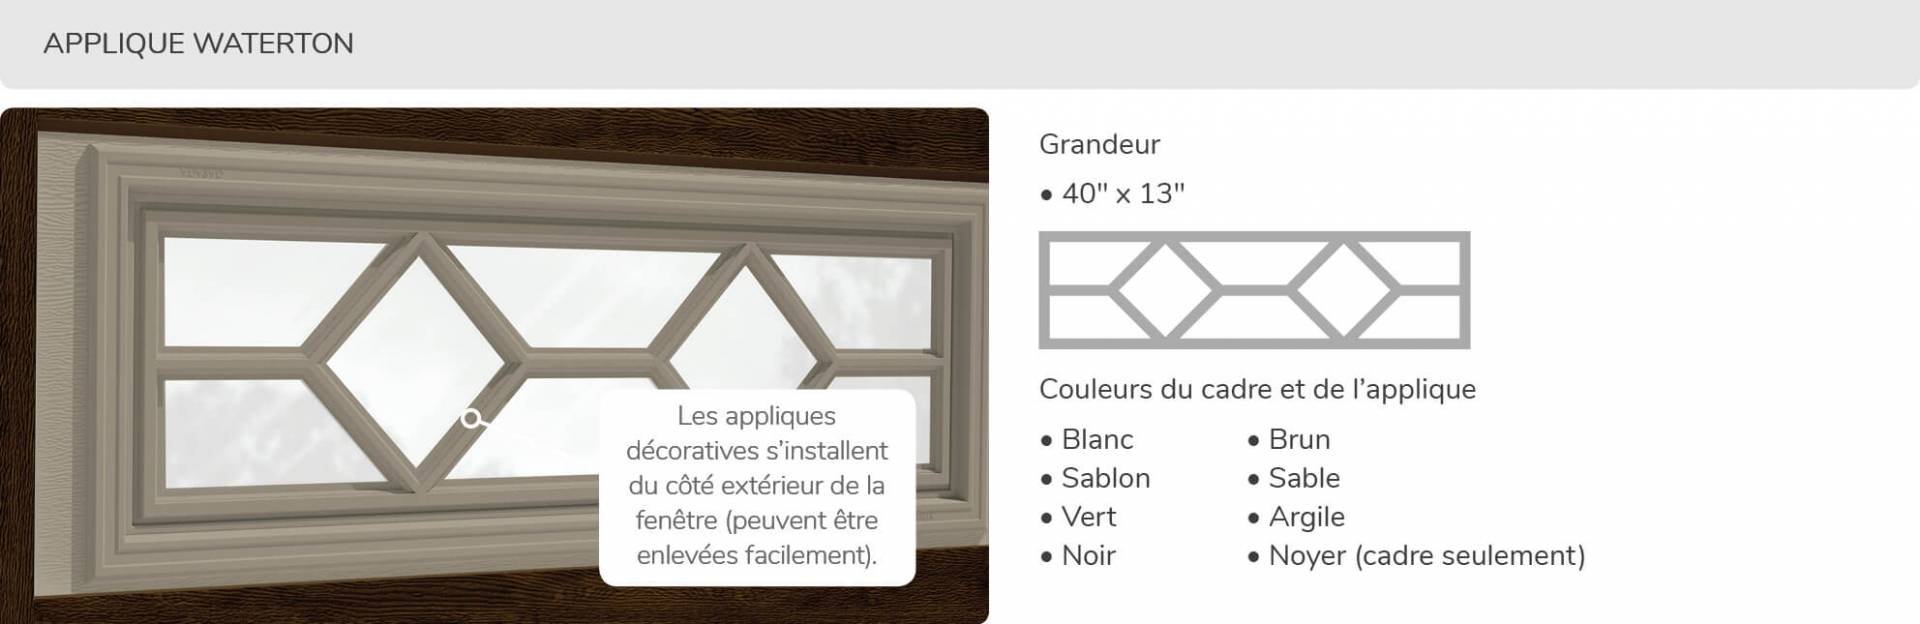 Applique Waterton, 40' x 13', disponible pour la porte R16